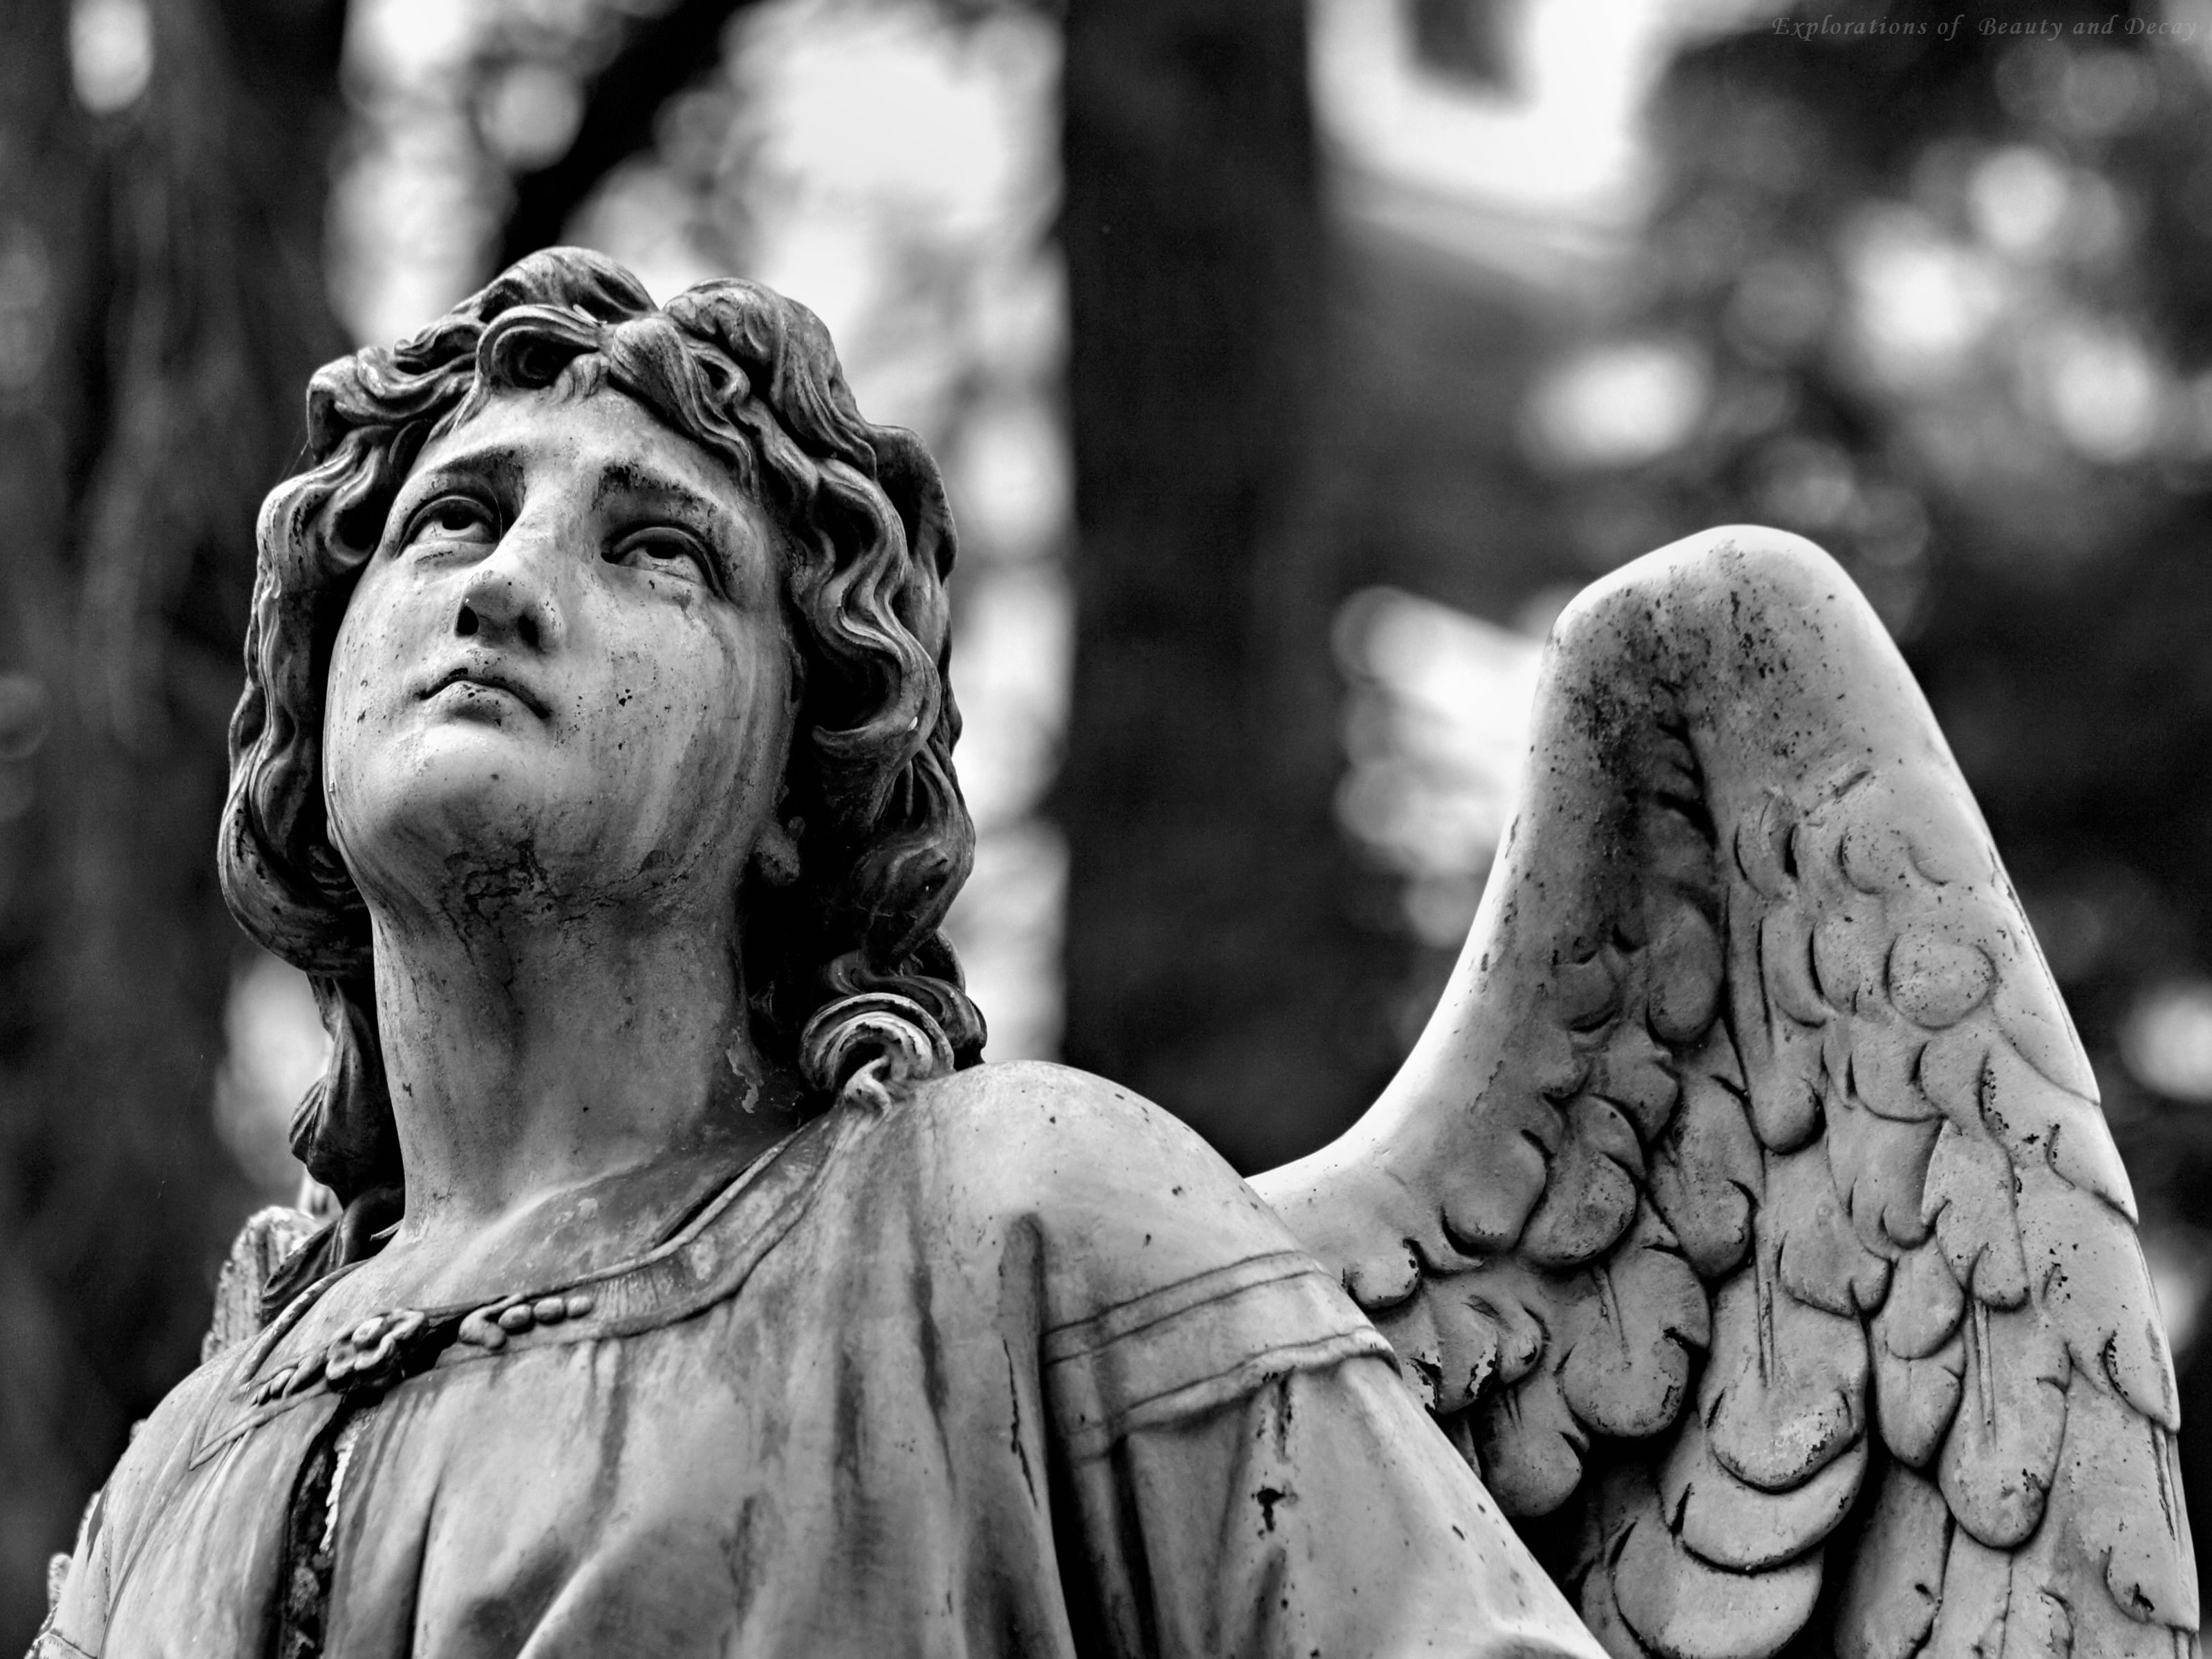 cemetery angels cemetery art cemetery statues weeping angels angel statues angels among us guardian angels graveyards google search